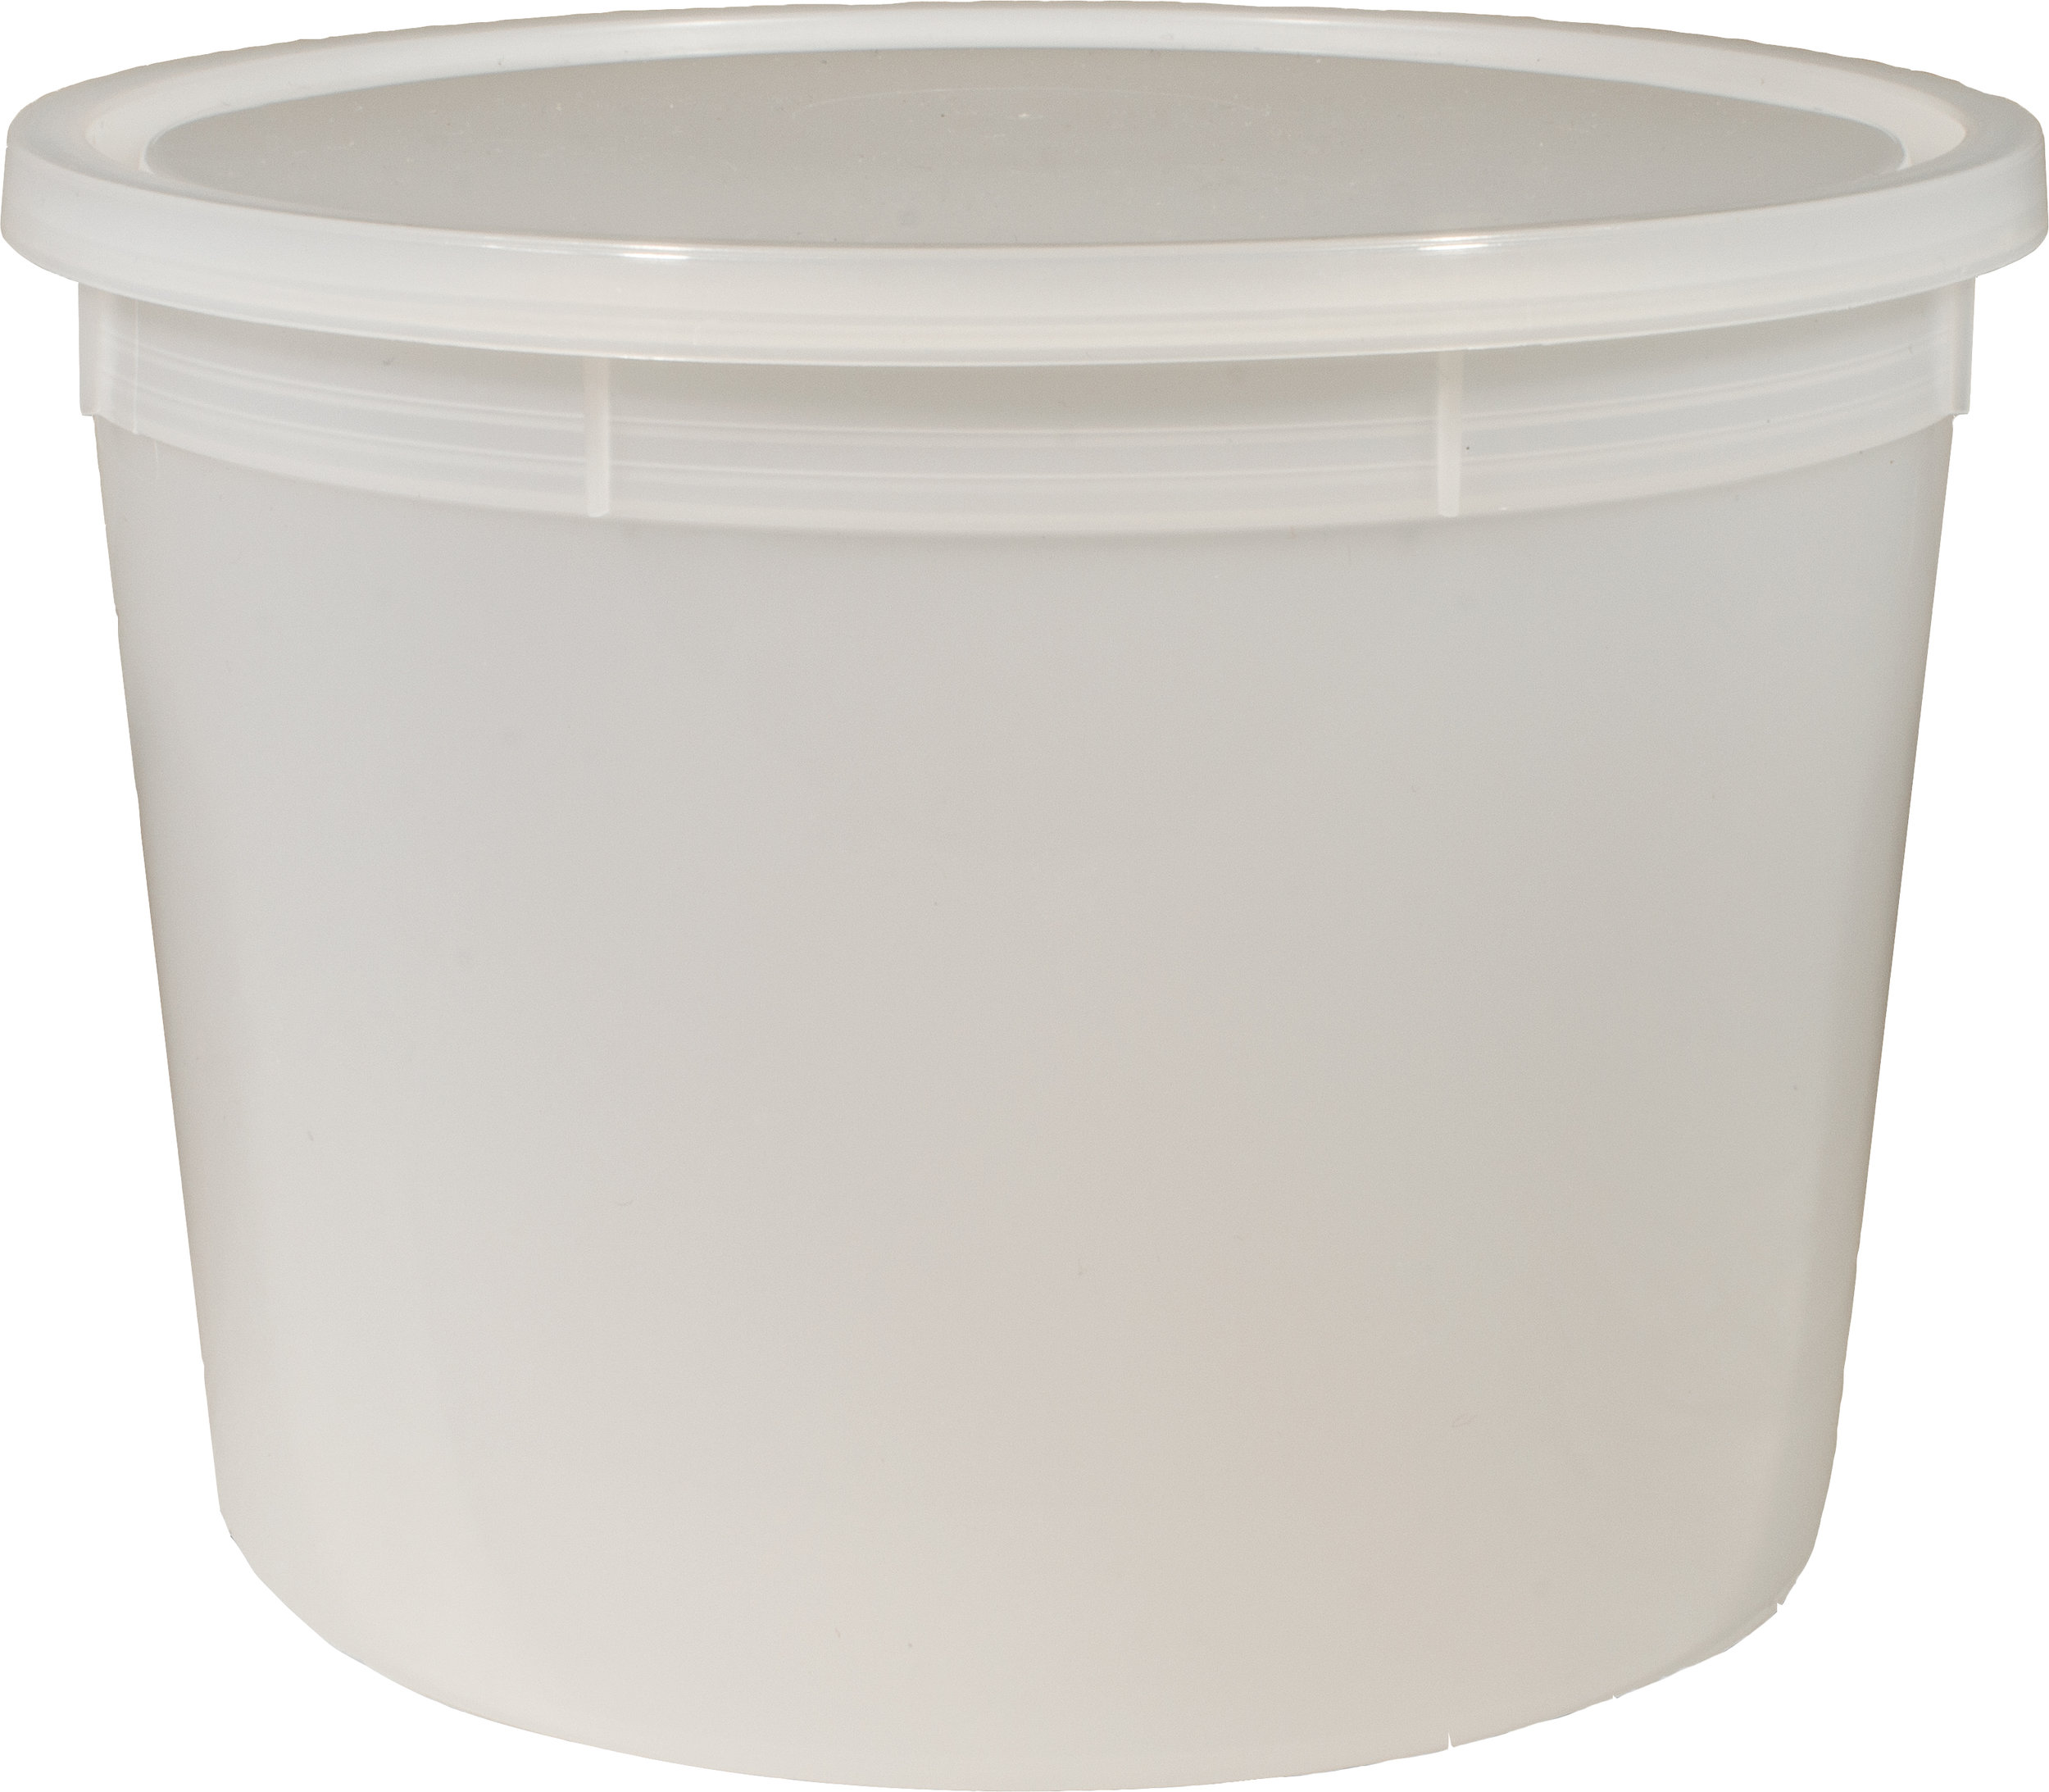 0.5 Gallon Container